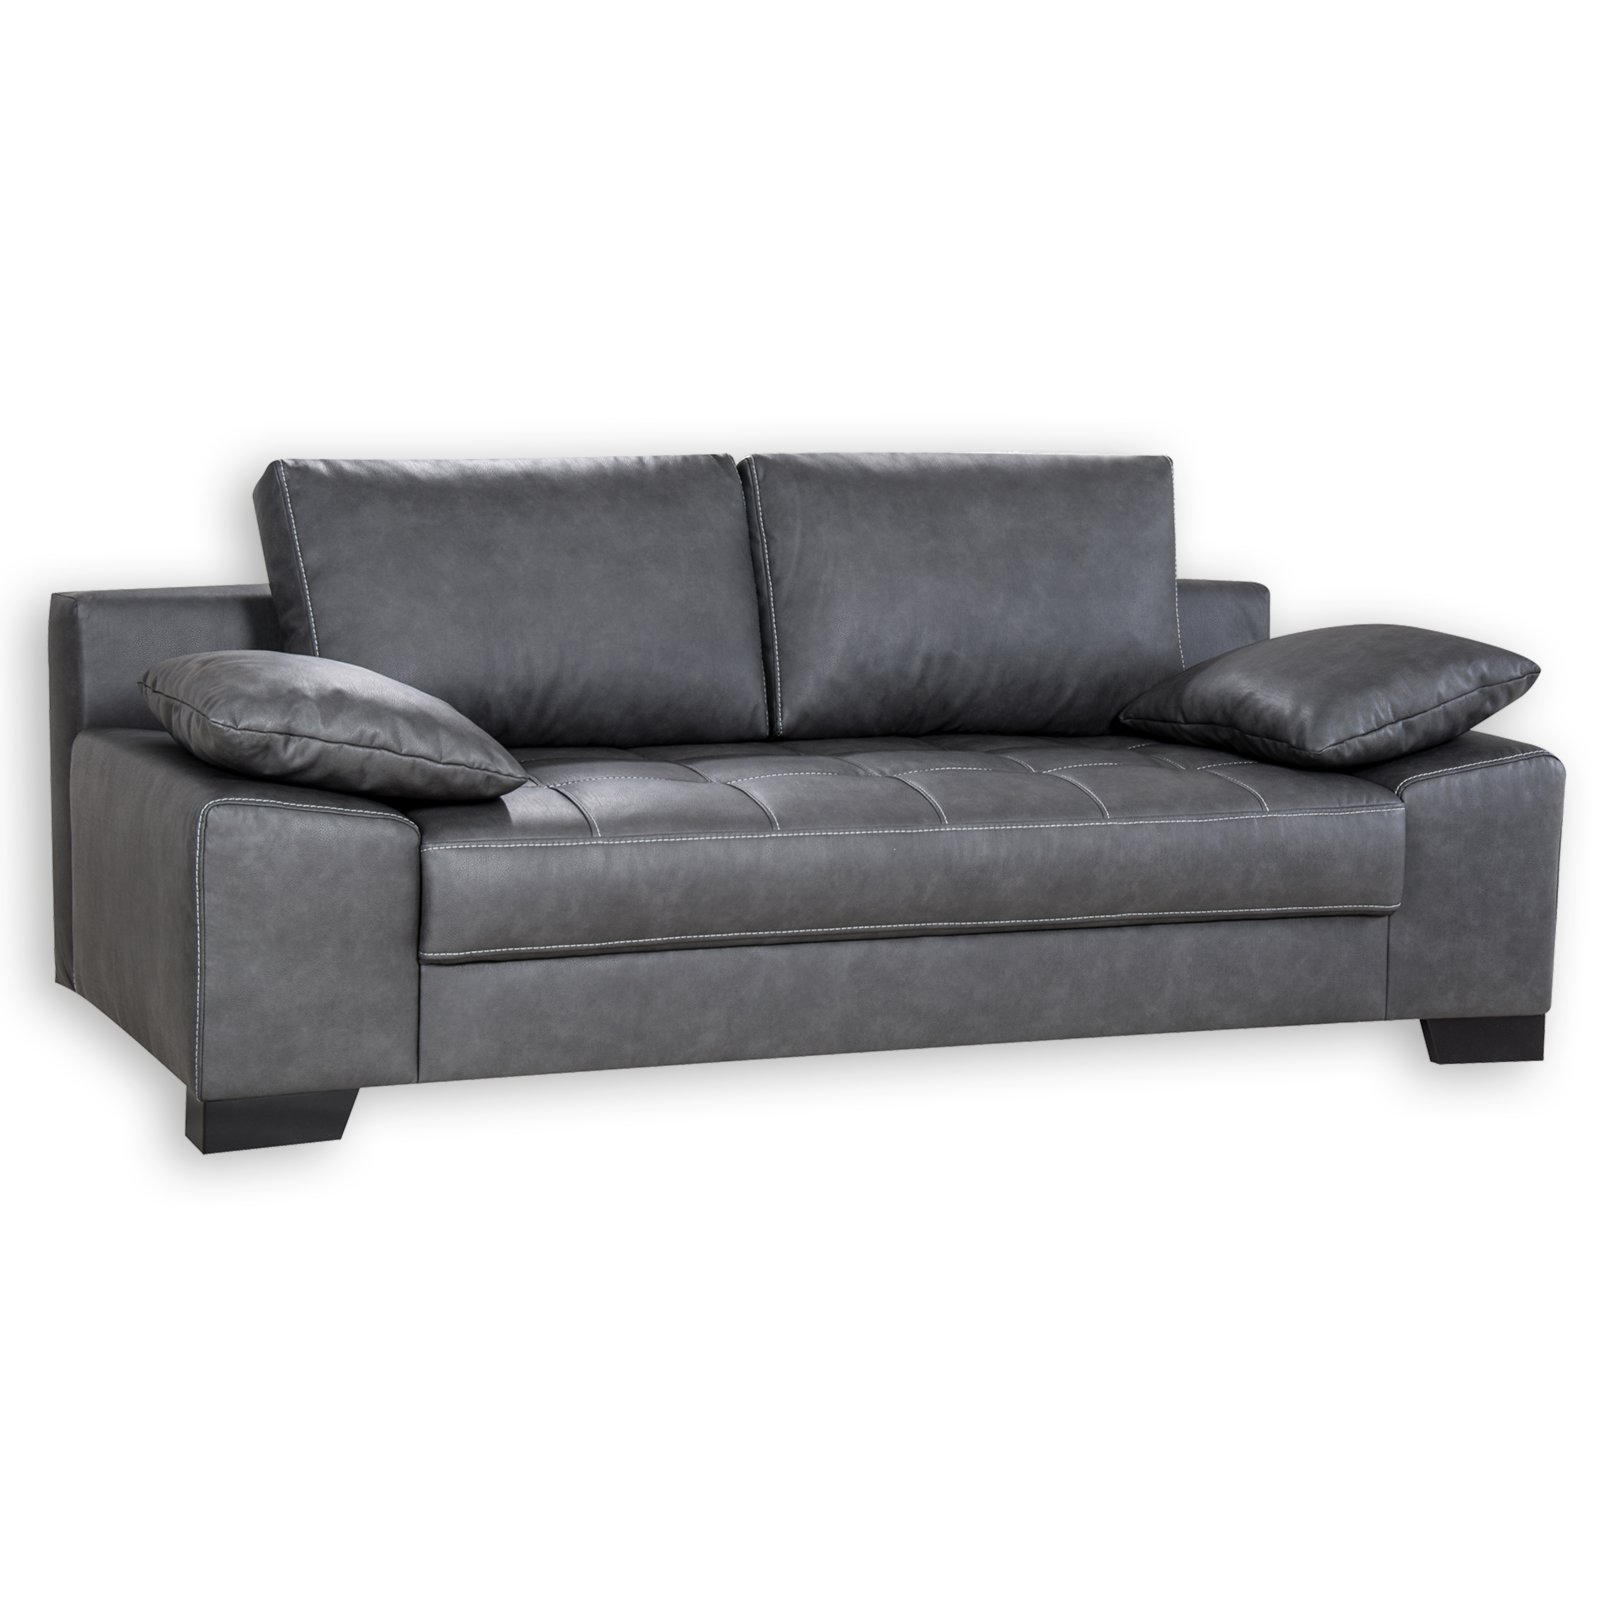 roller 3 sitzer sofa anthrazit dauerschl fer ebay. Black Bedroom Furniture Sets. Home Design Ideas